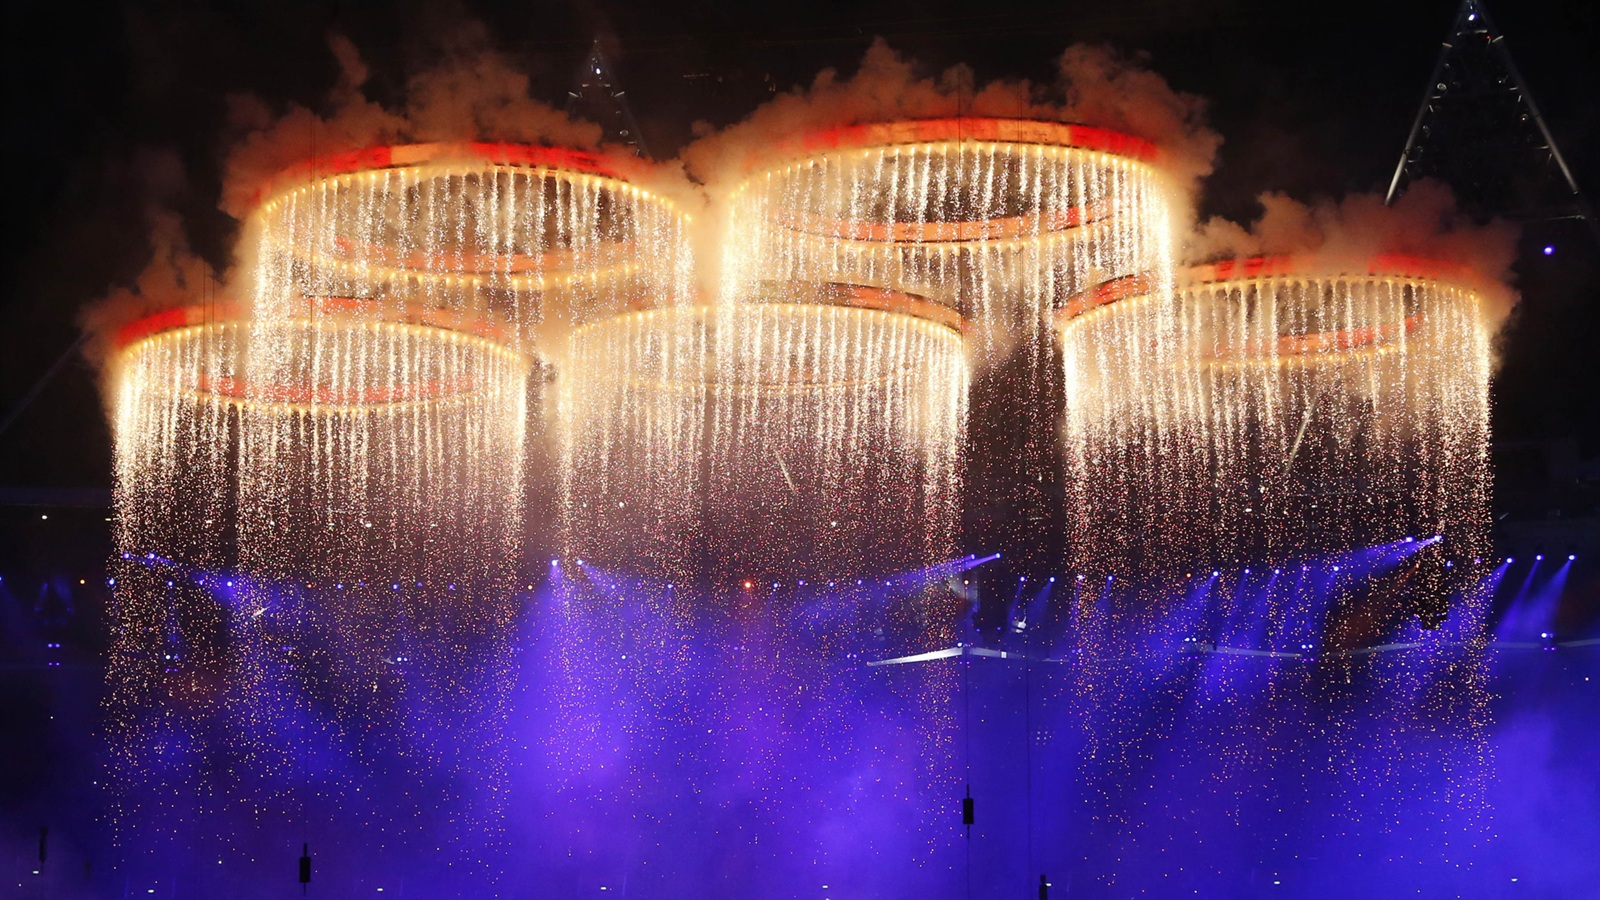 London Olympic Games opening ceremony, fireworks pentacyclic wallpaper - 1600x900